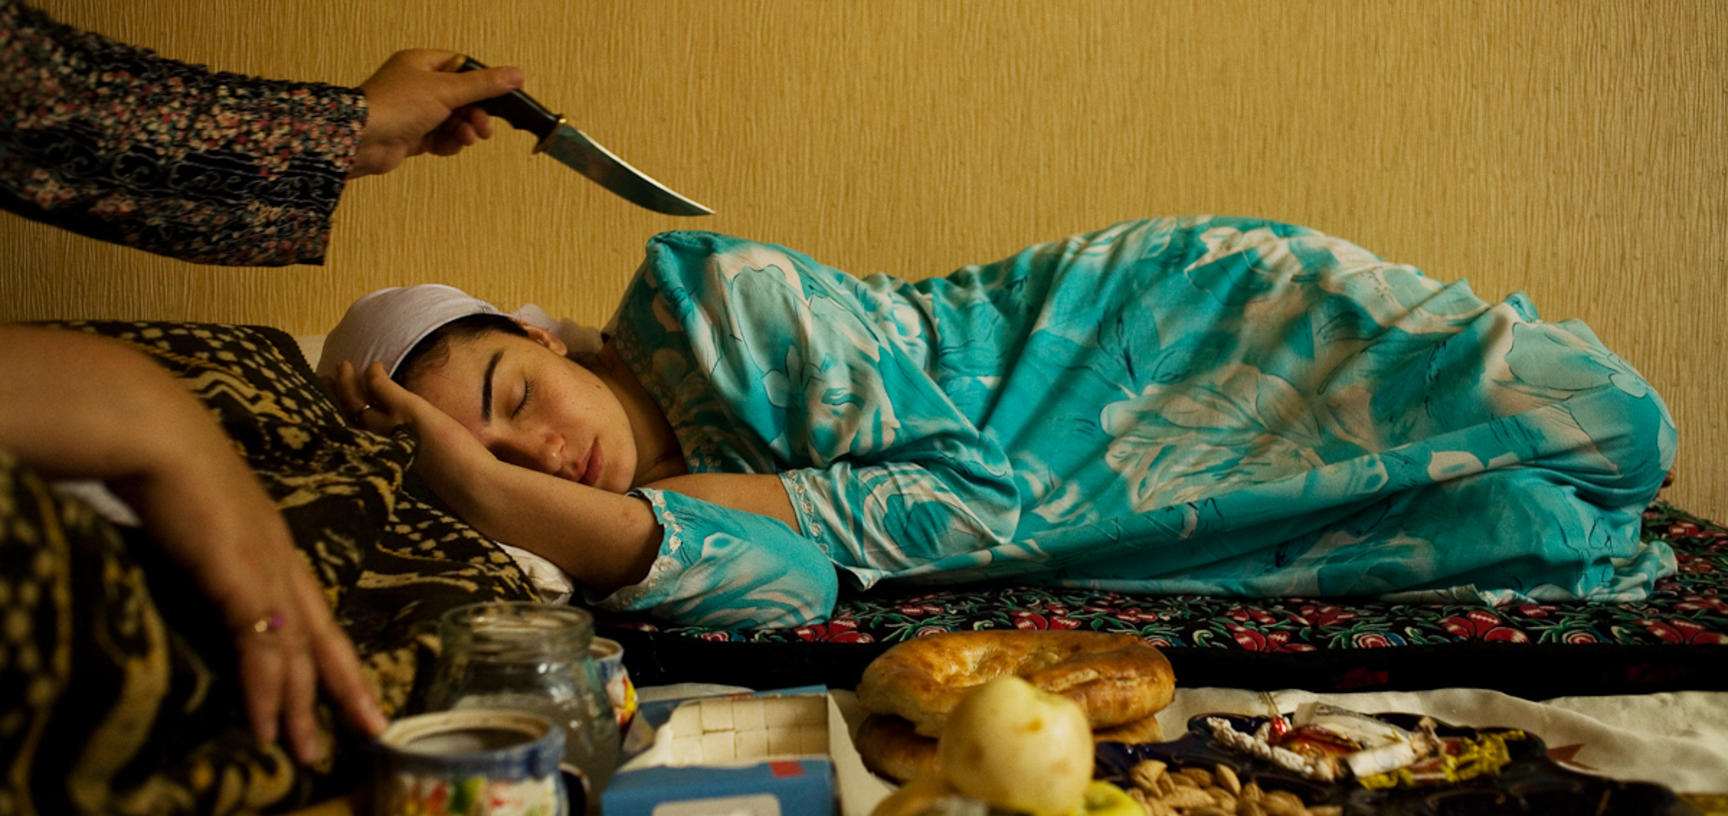 A healer works to cure tiredness due to a recent bereavement. Dushanbe, Tajikistan. Photograph by Carolyn Drake. July 2008.